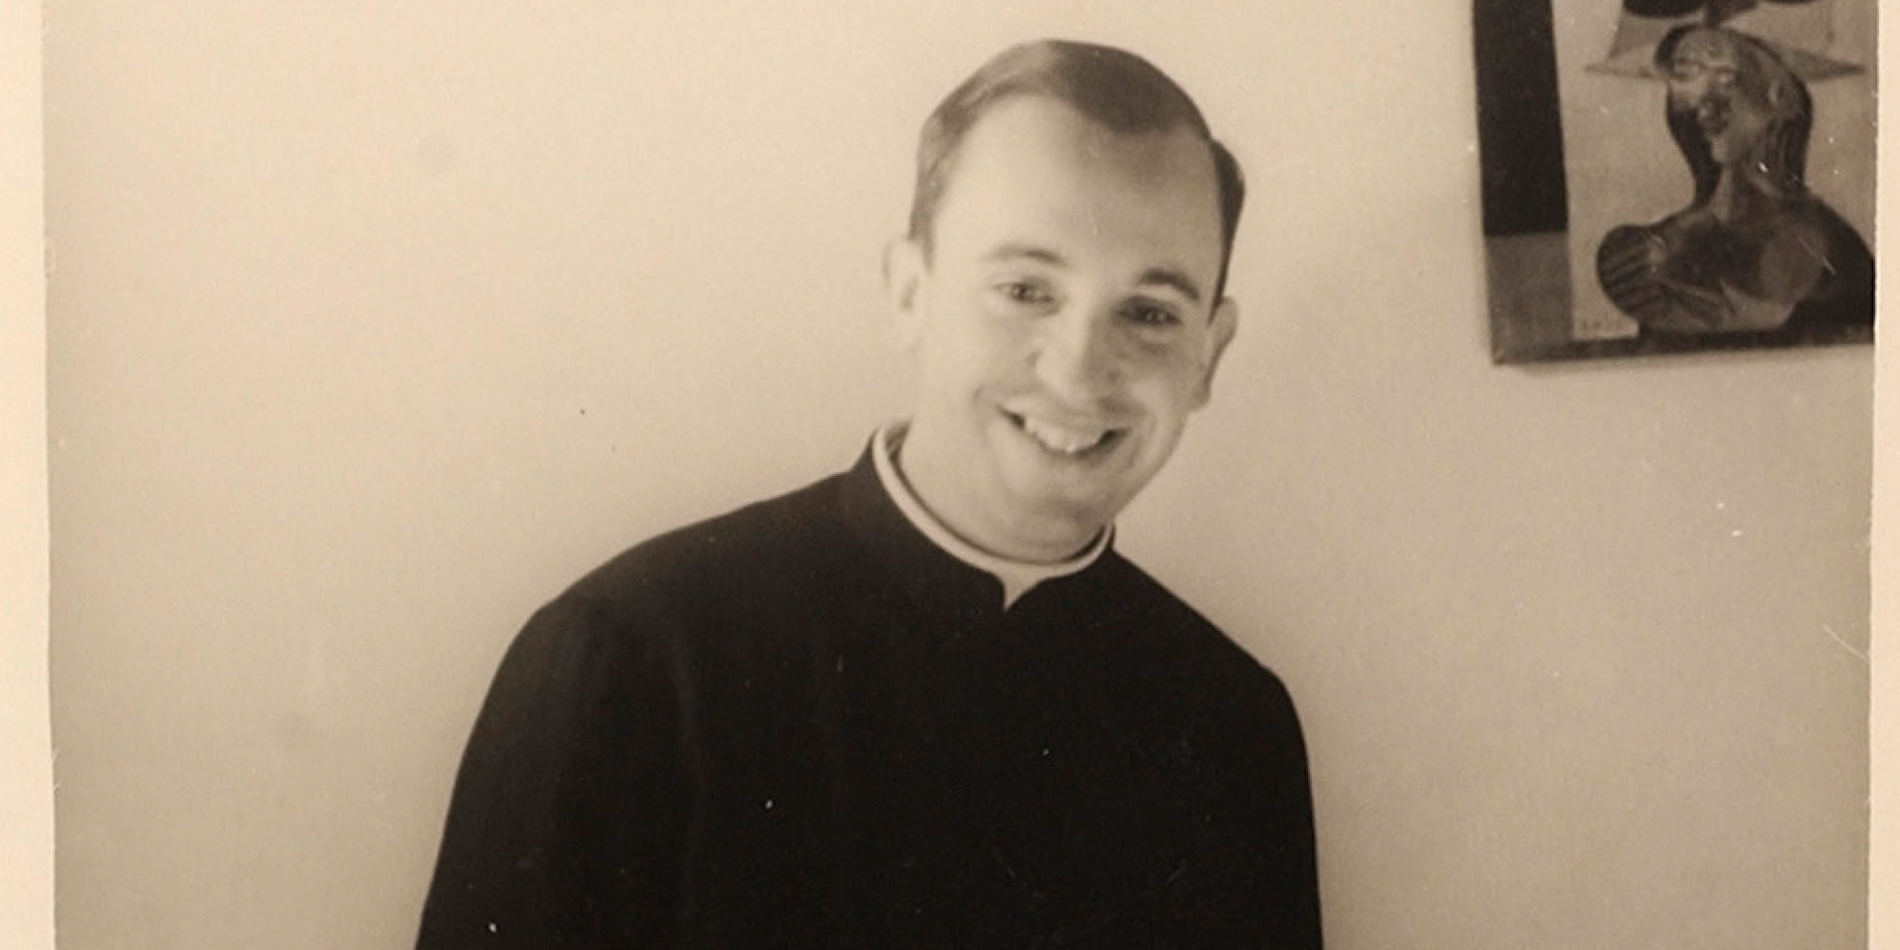 Pope Francis as a Young Man